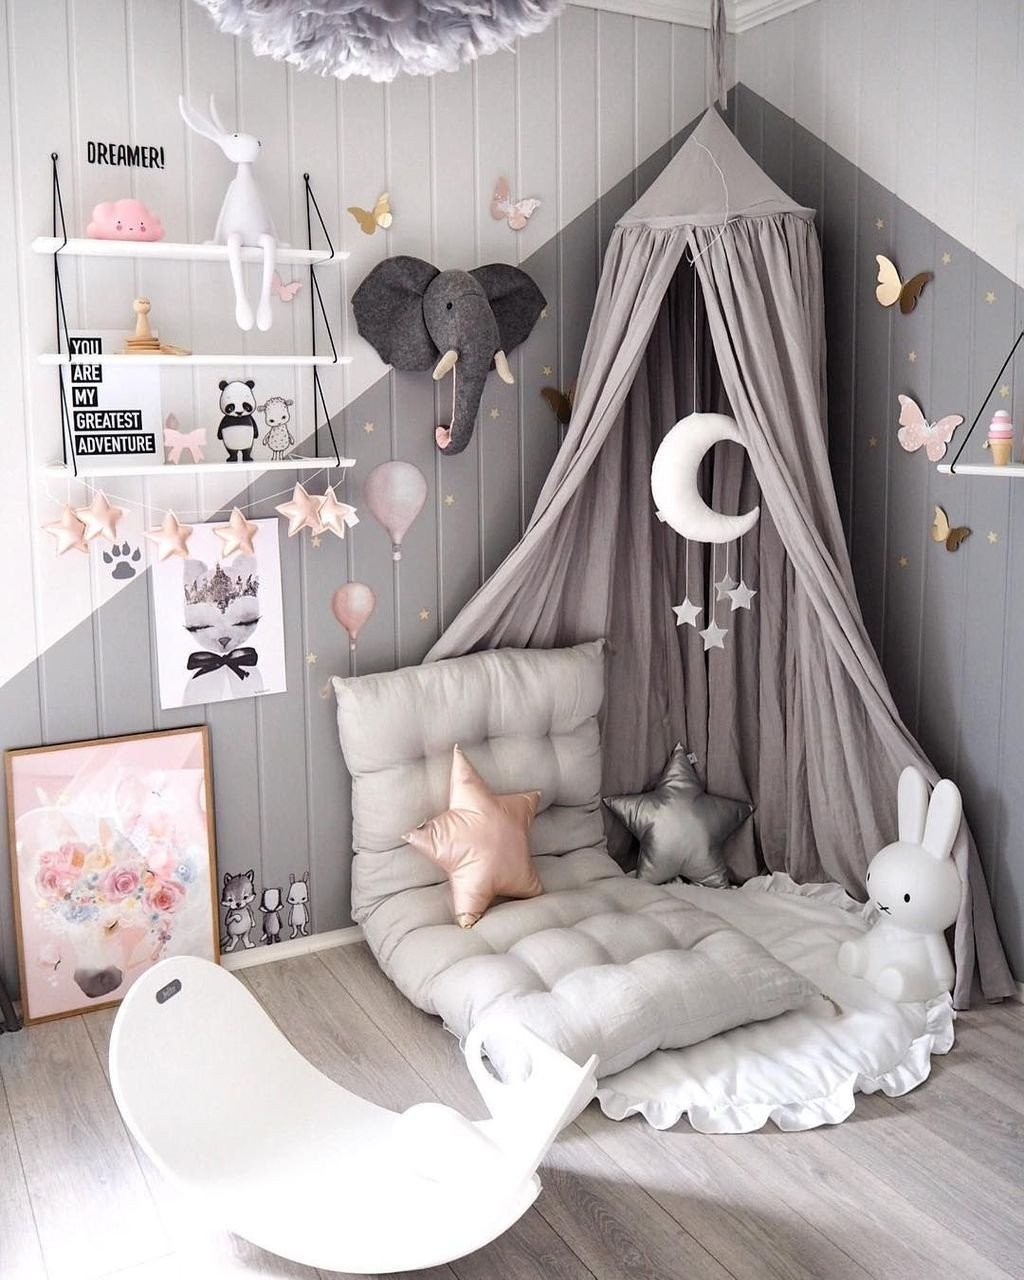 Boy Baby Bedroom Ideas New 20 Inspiring Reading Room Decor Ideas to Make You Cozy